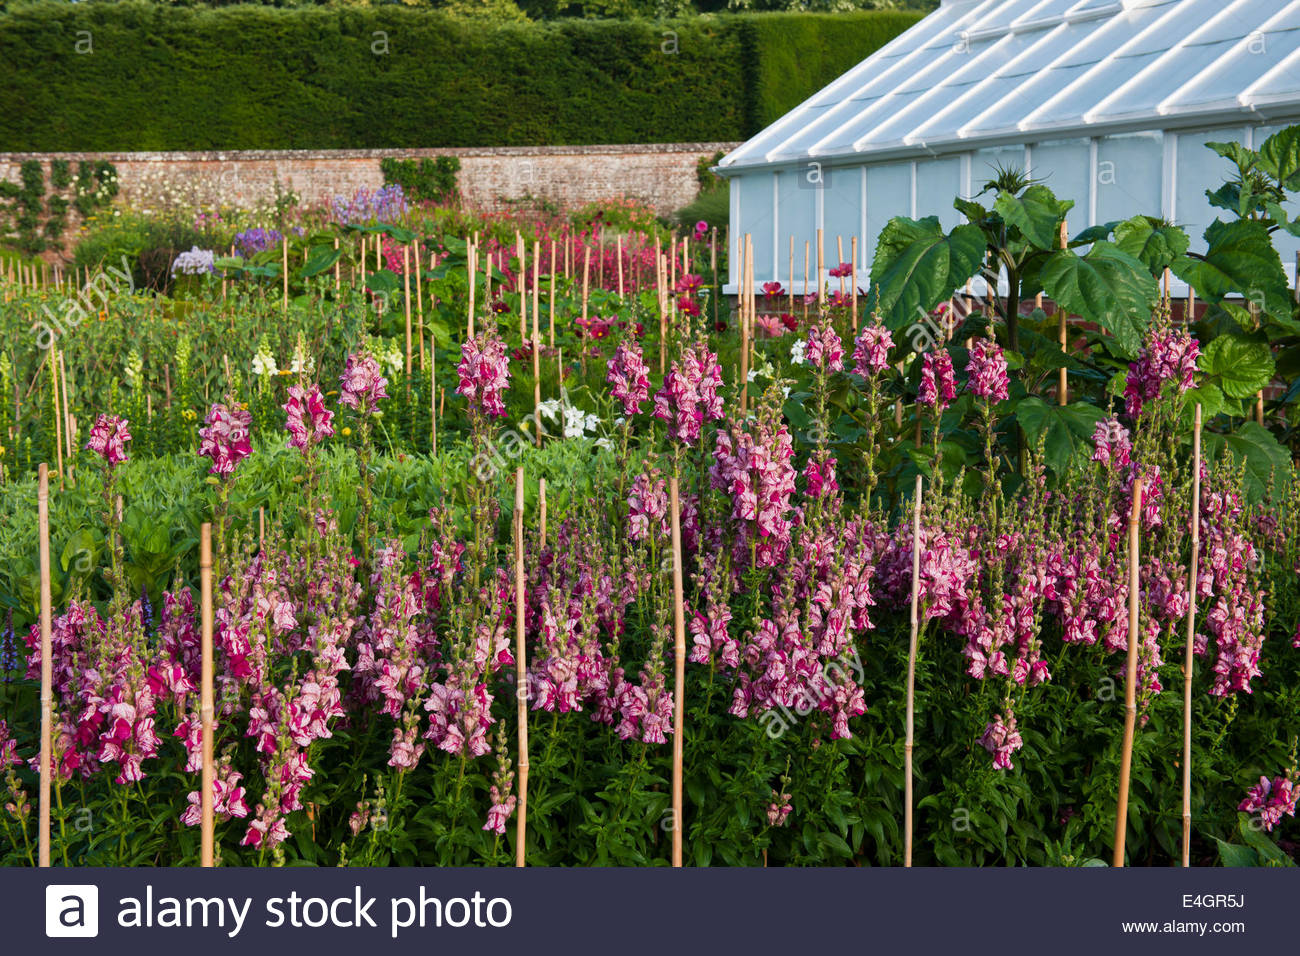 Cut Flowers Rows Growing West Dean Walled Garden Sussex Summer Flower Plant  July Flowers Blooms Blossoms